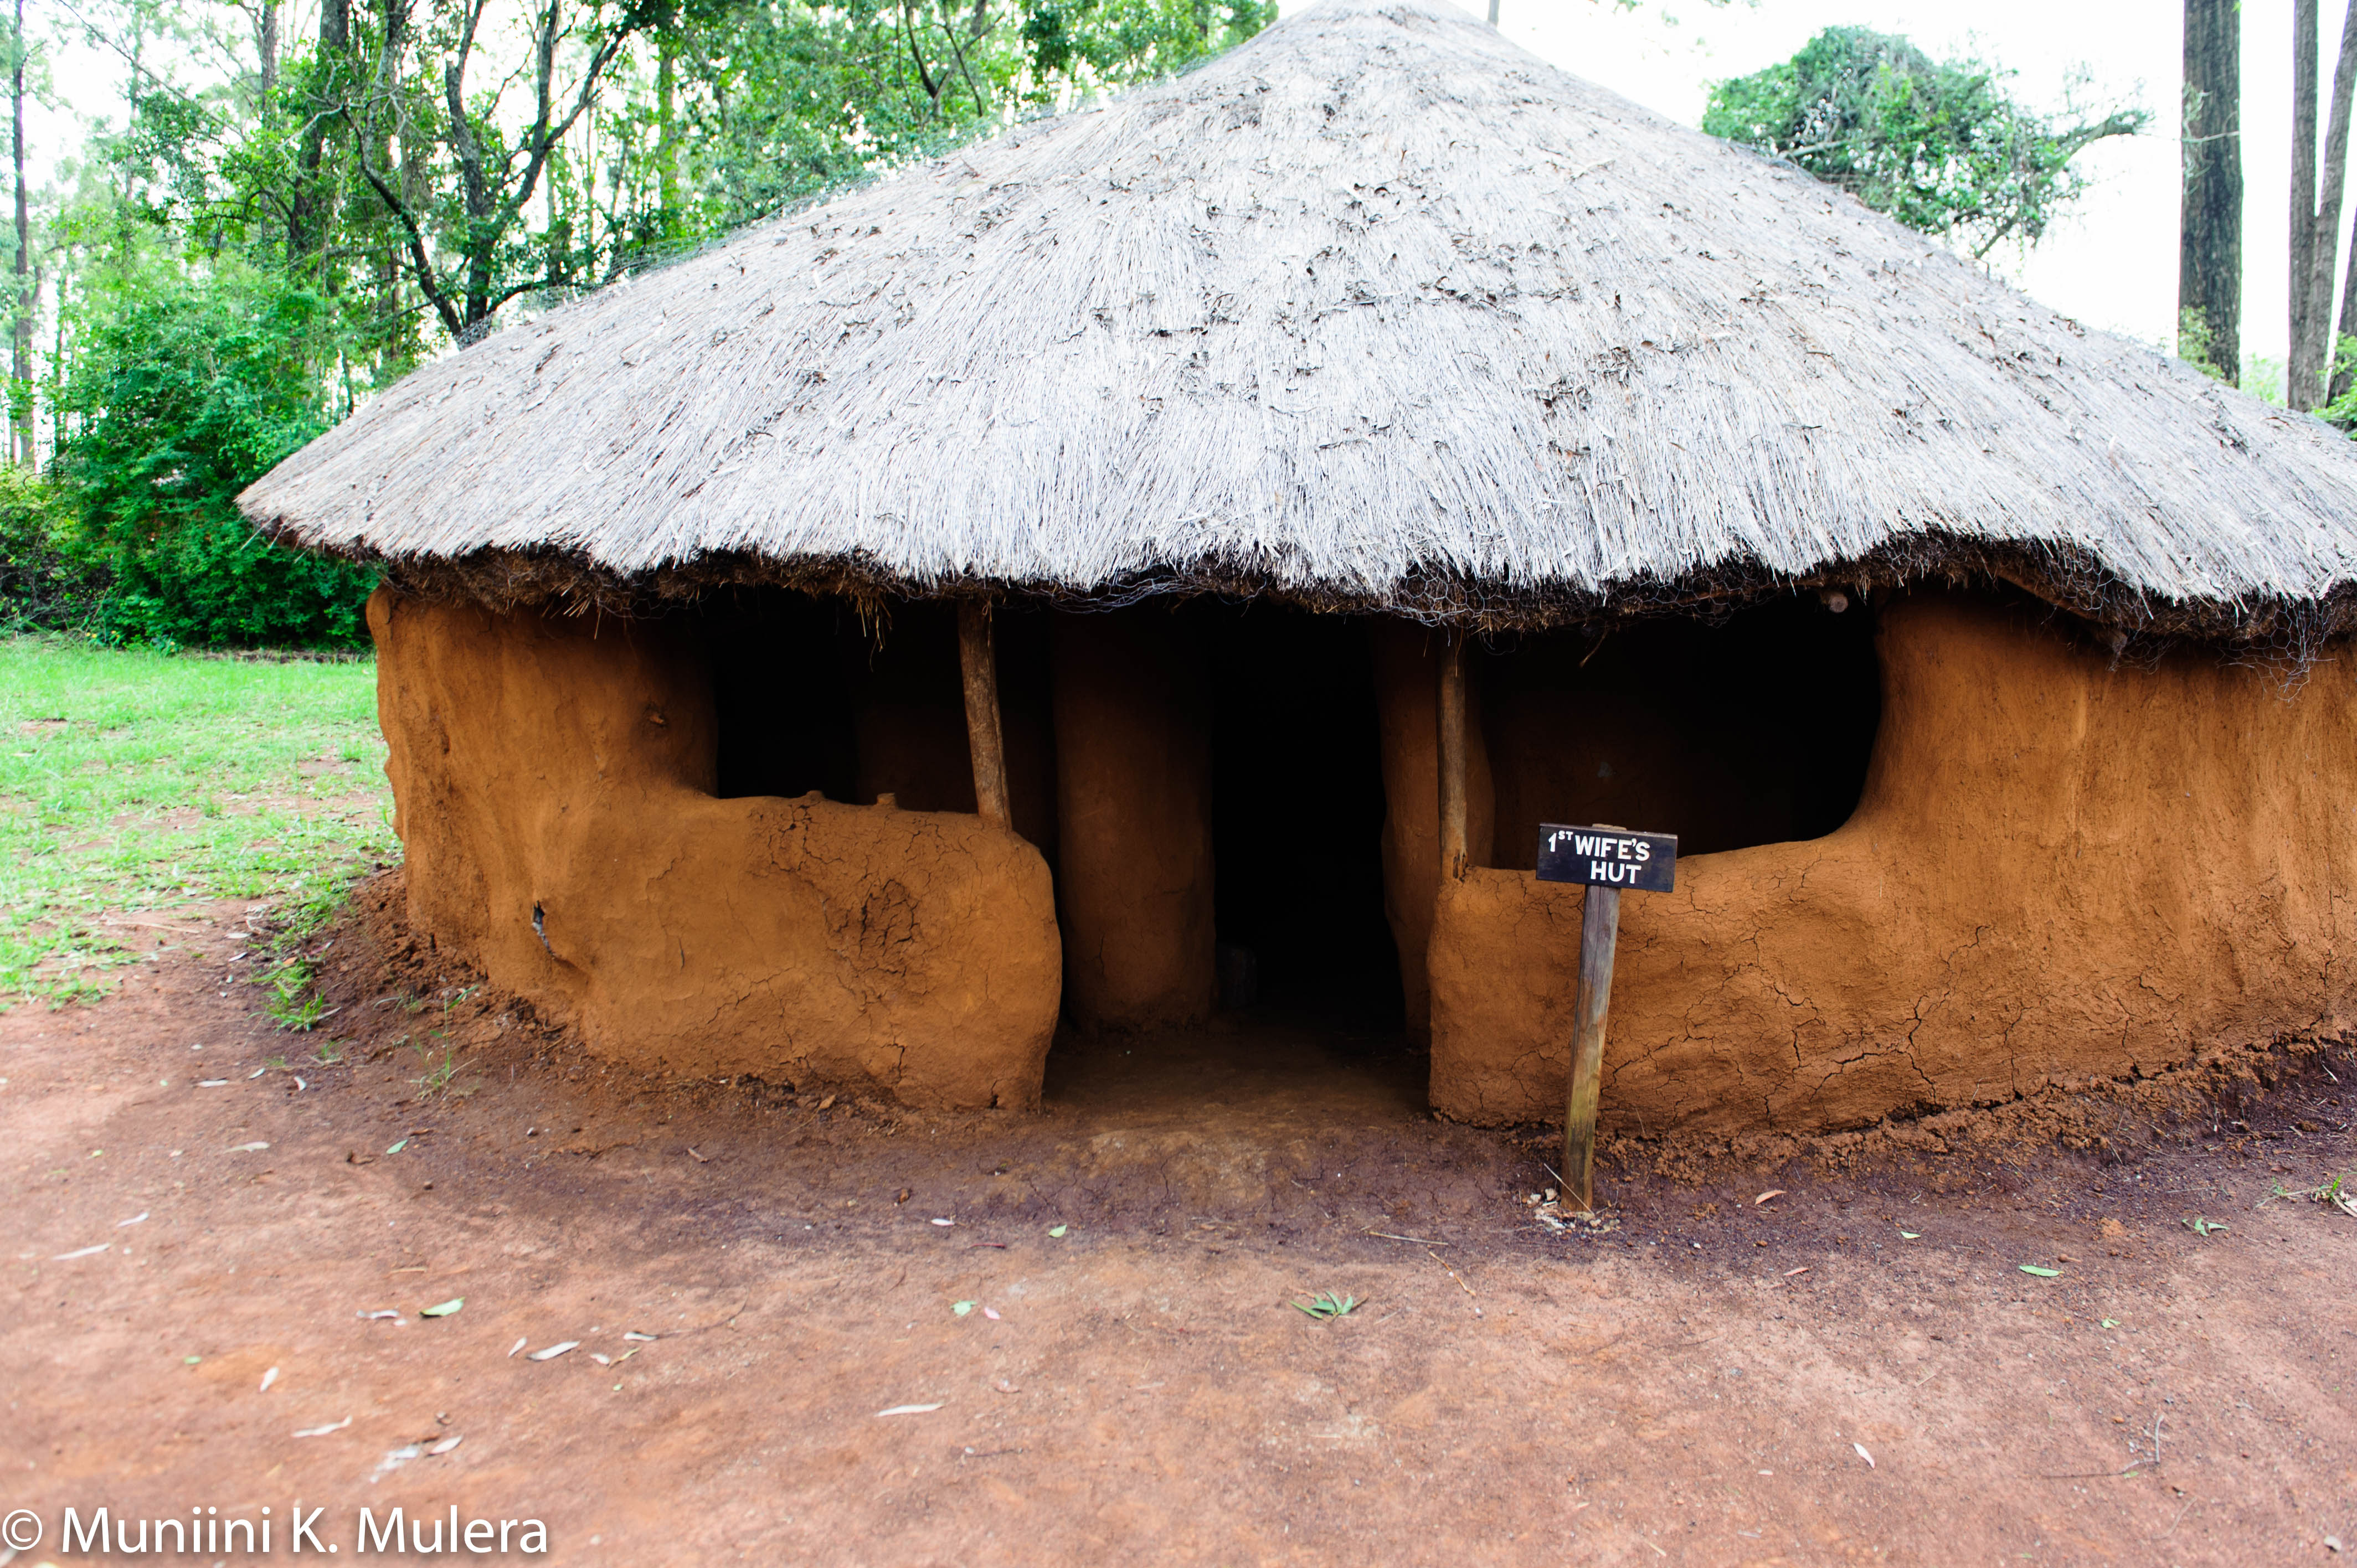 Bomas of Kenya First Wife's hut